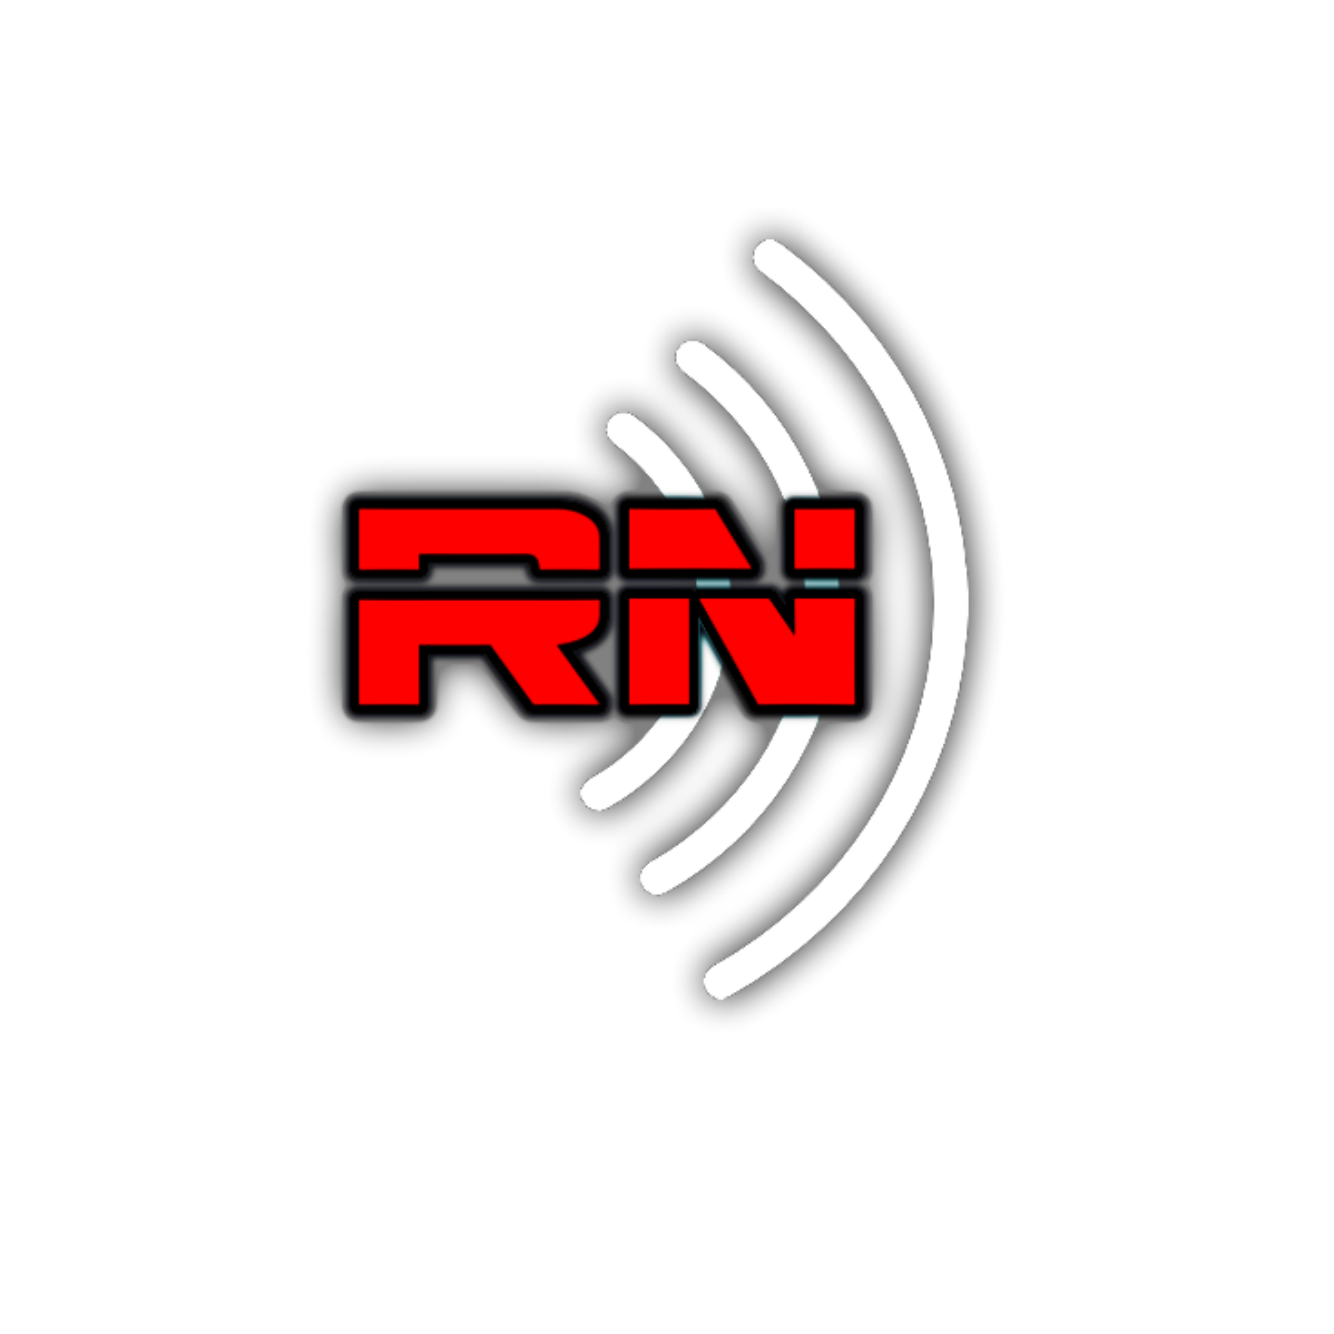 Rn_-_rated_next_radio_network_logo_white_hd102050_1134x1334